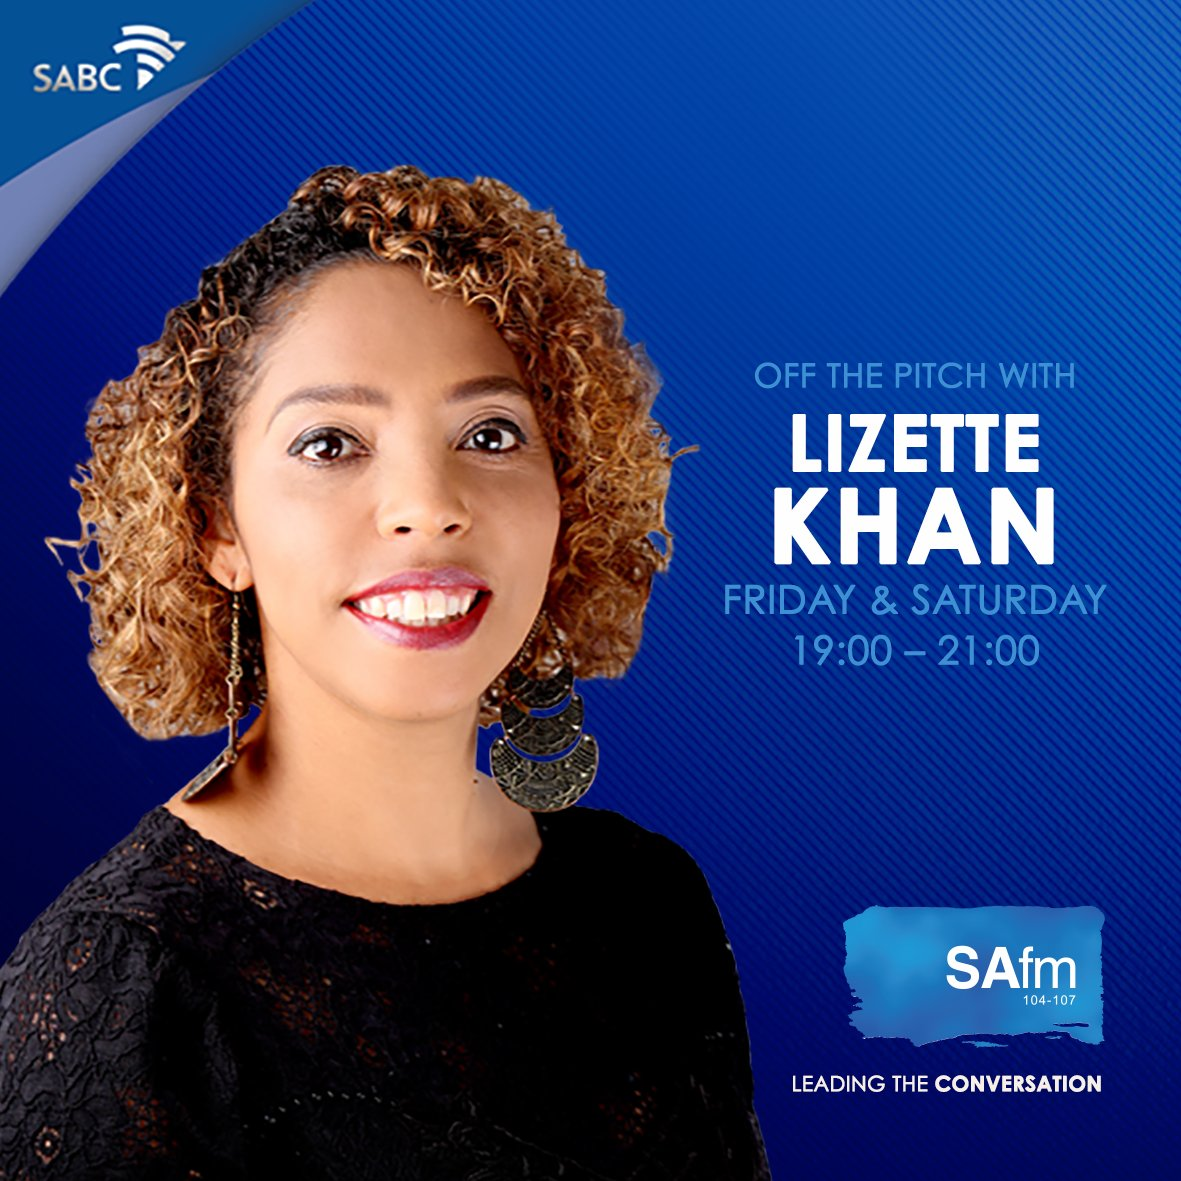 SAfm 104.6 interview with Lizette Khan